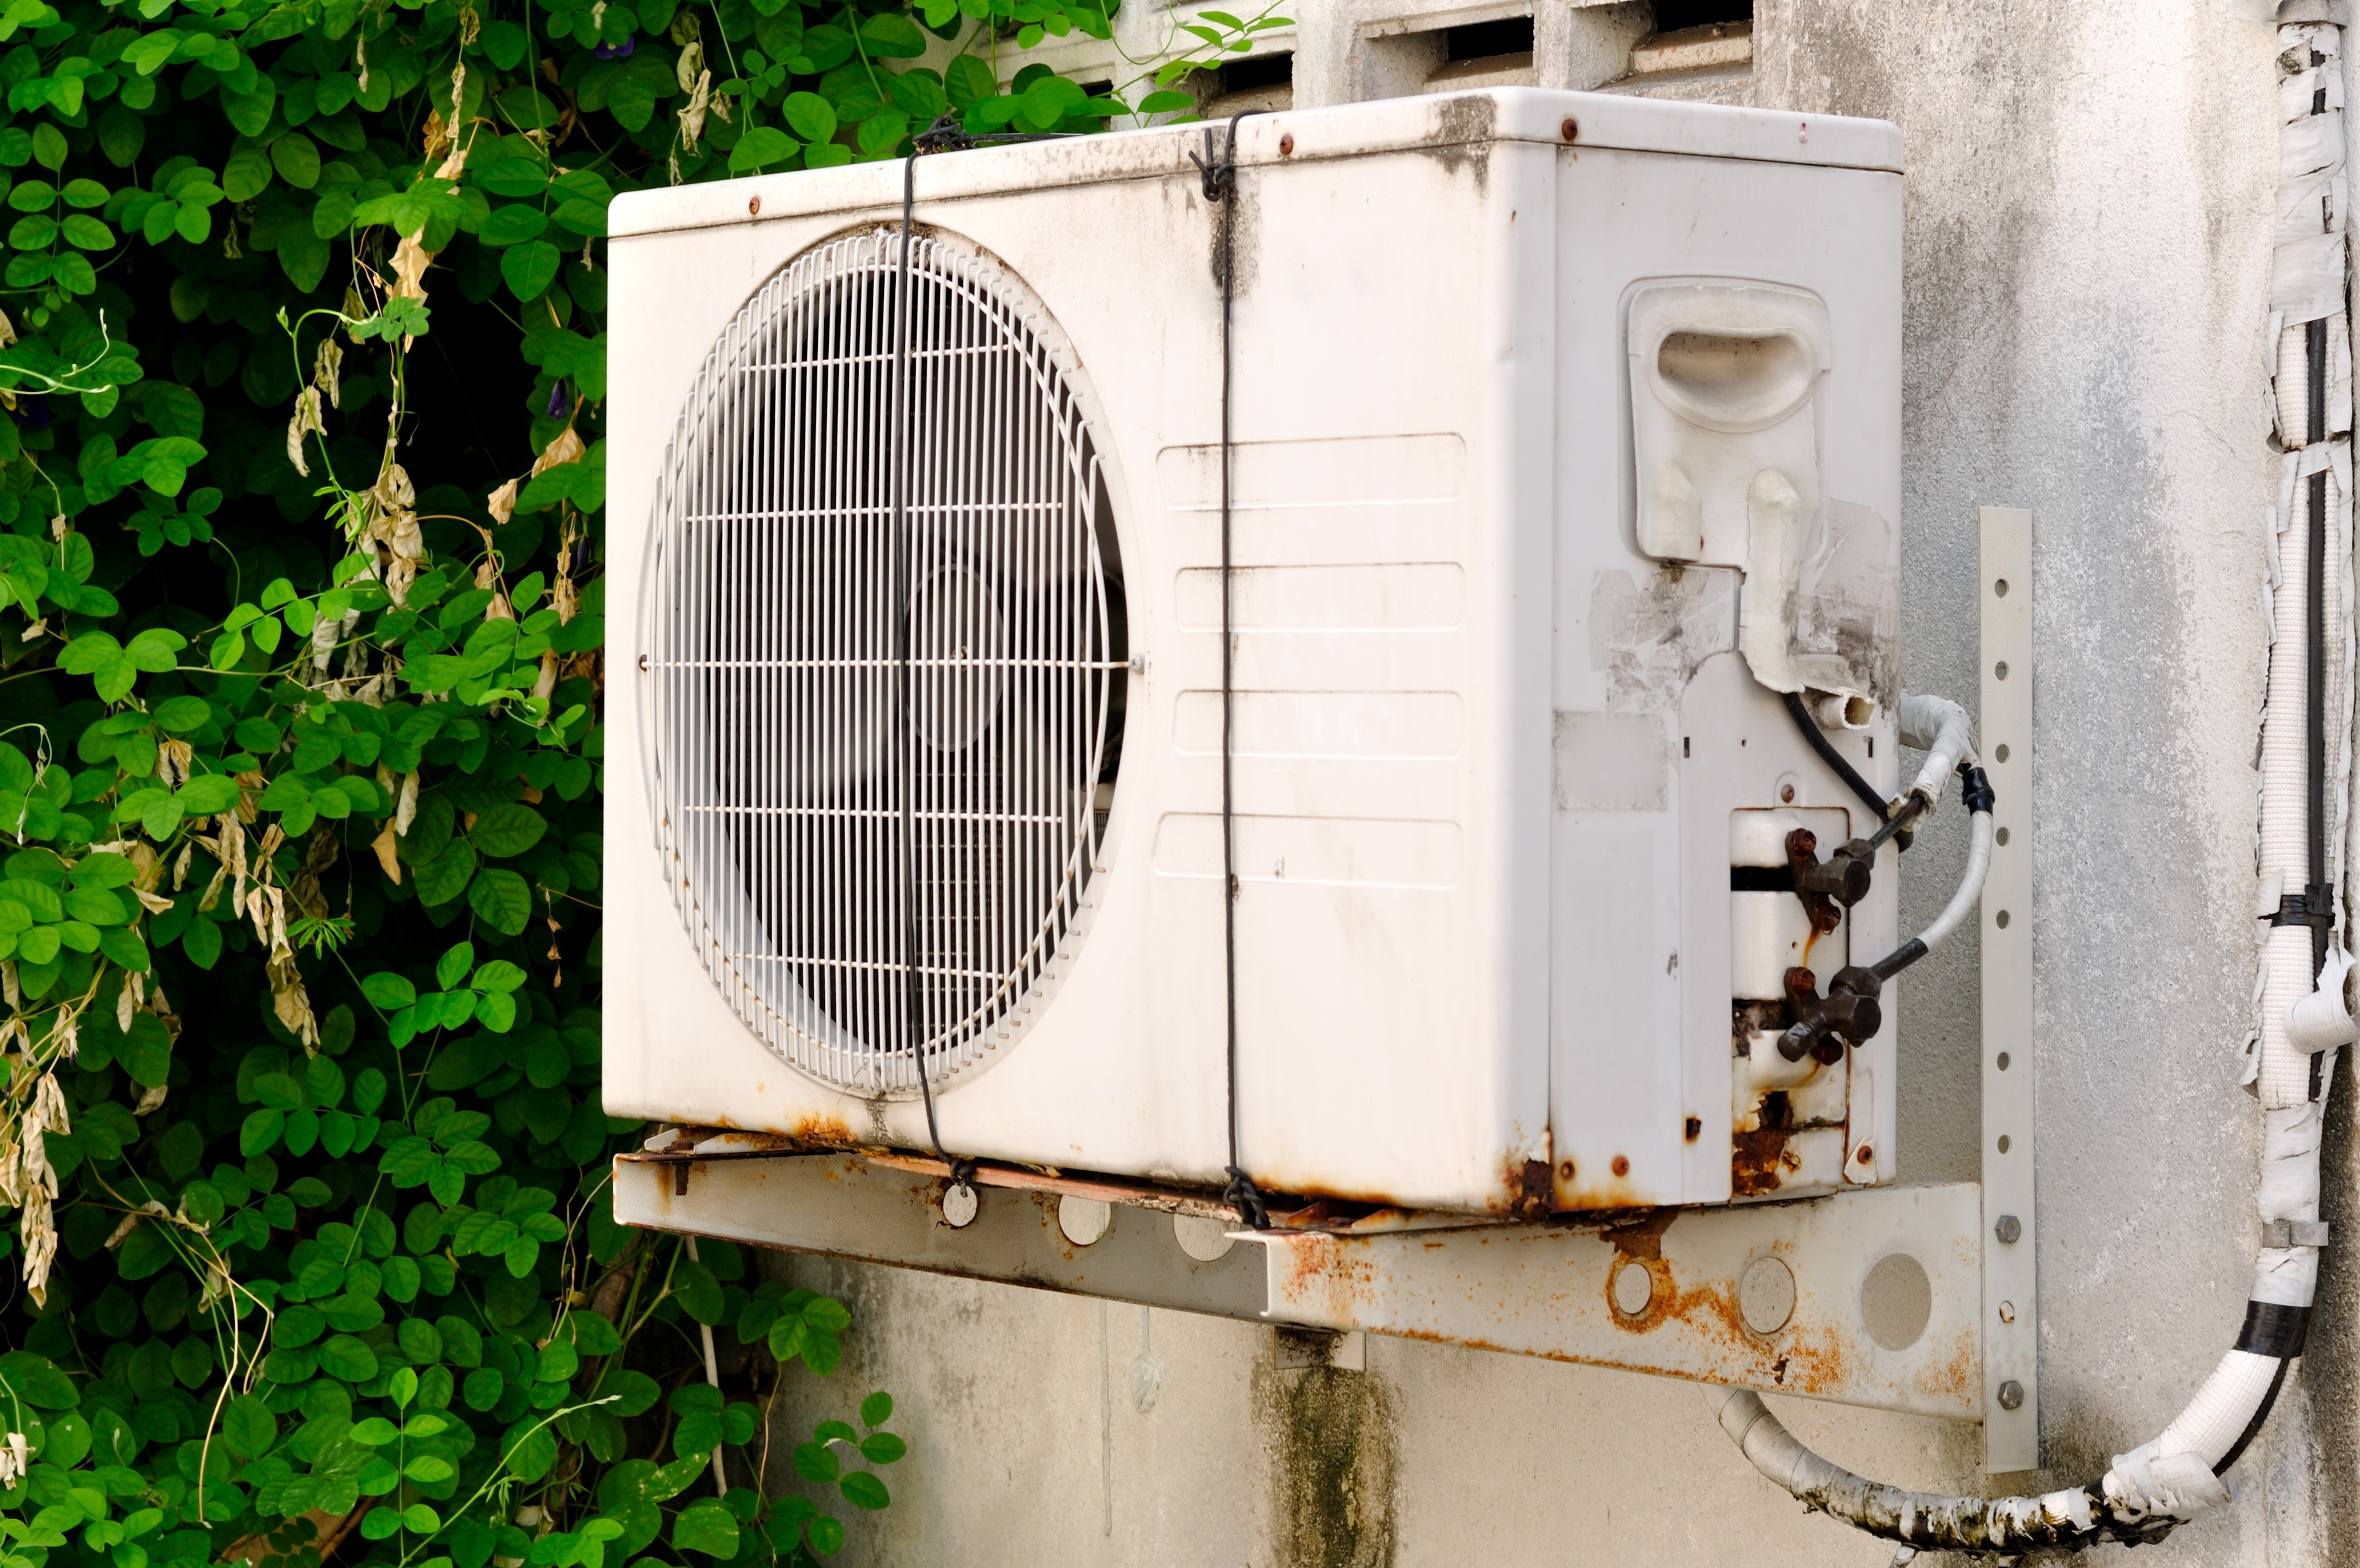 Need to update your old AC unit? You're in luck! Contact